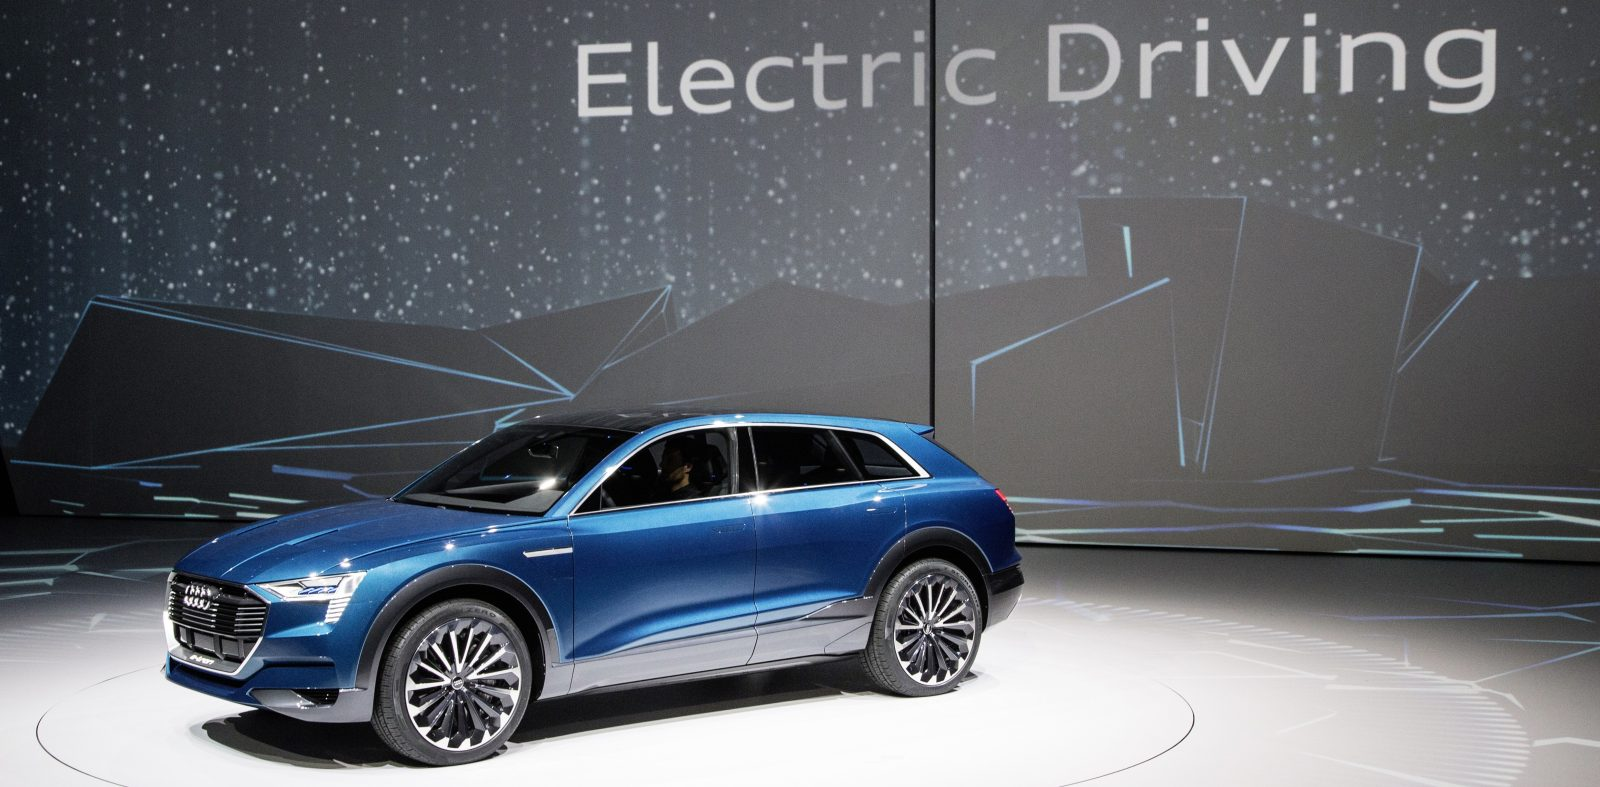 Audi Confirms All Electric E Tron Quattro Suv Starting Price Of 80 000 99